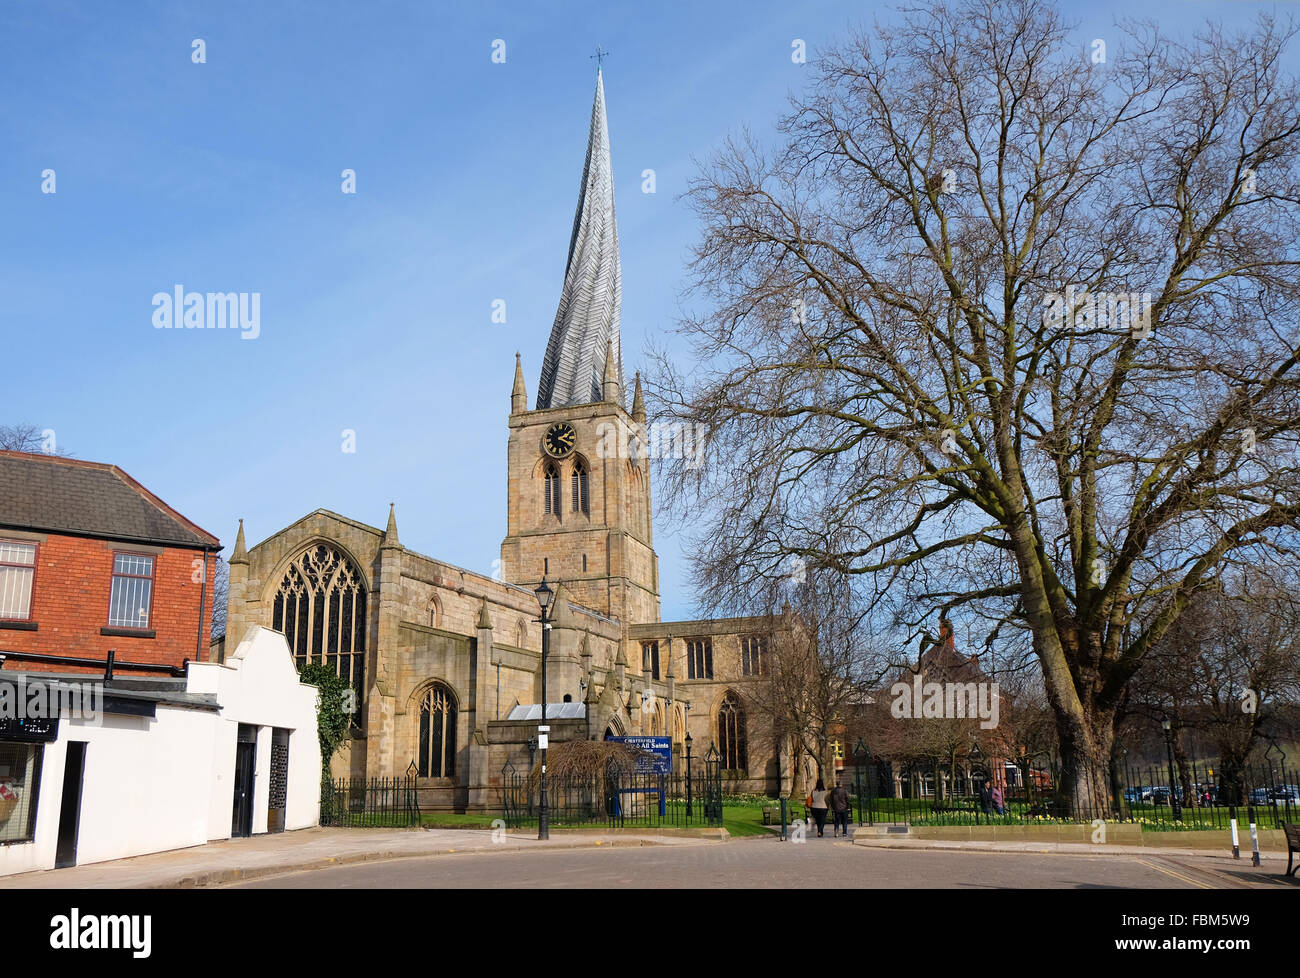 Crooked Spire at Chesterfield - Stock Image